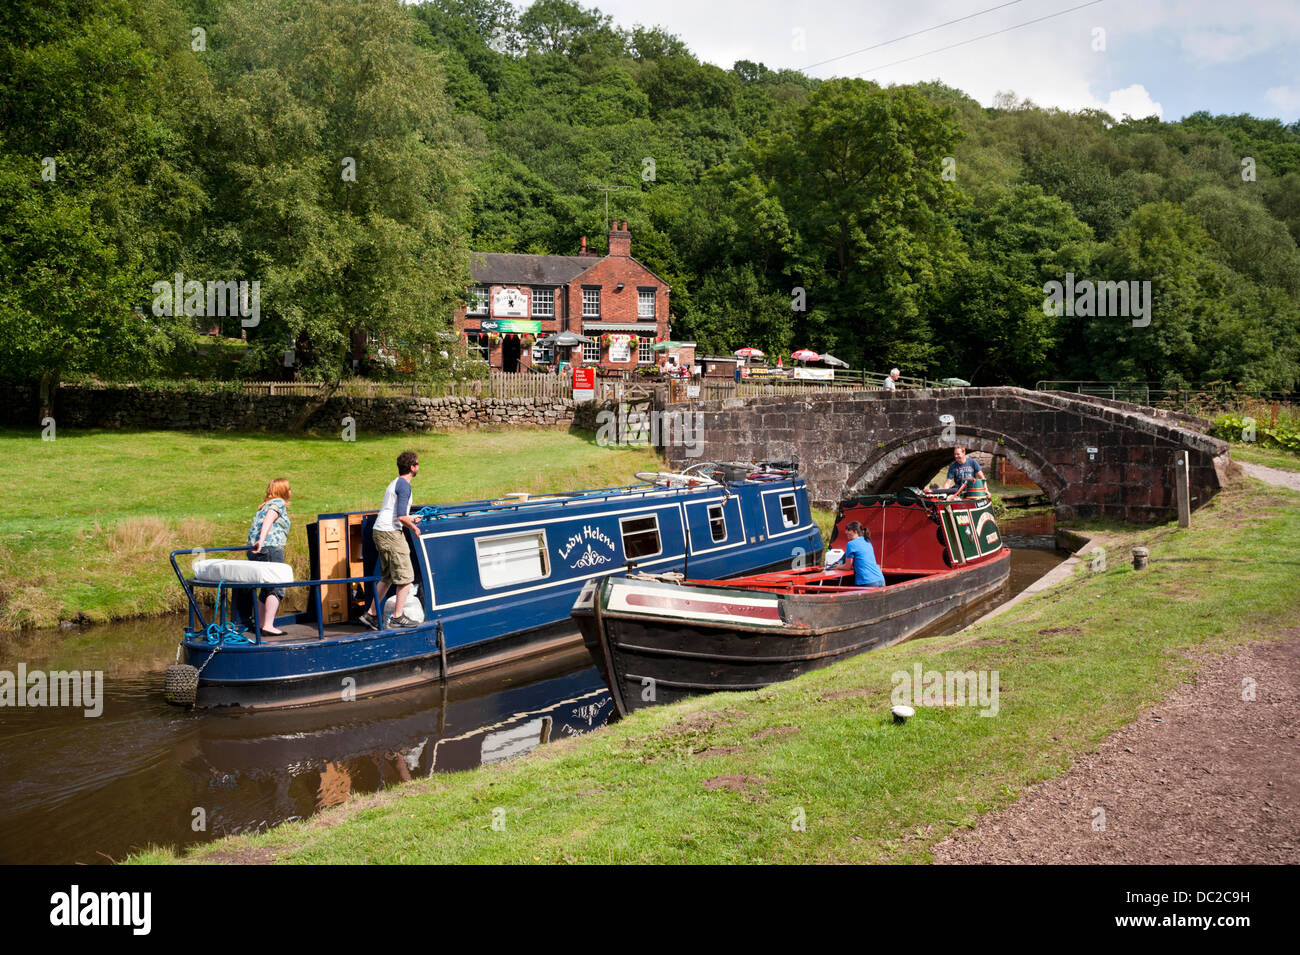 Narrowboats passing on a Summer's day on the Caldon Canal, Consall Forge,Churnet Valley, Staffordshire, UK. - Stock Image